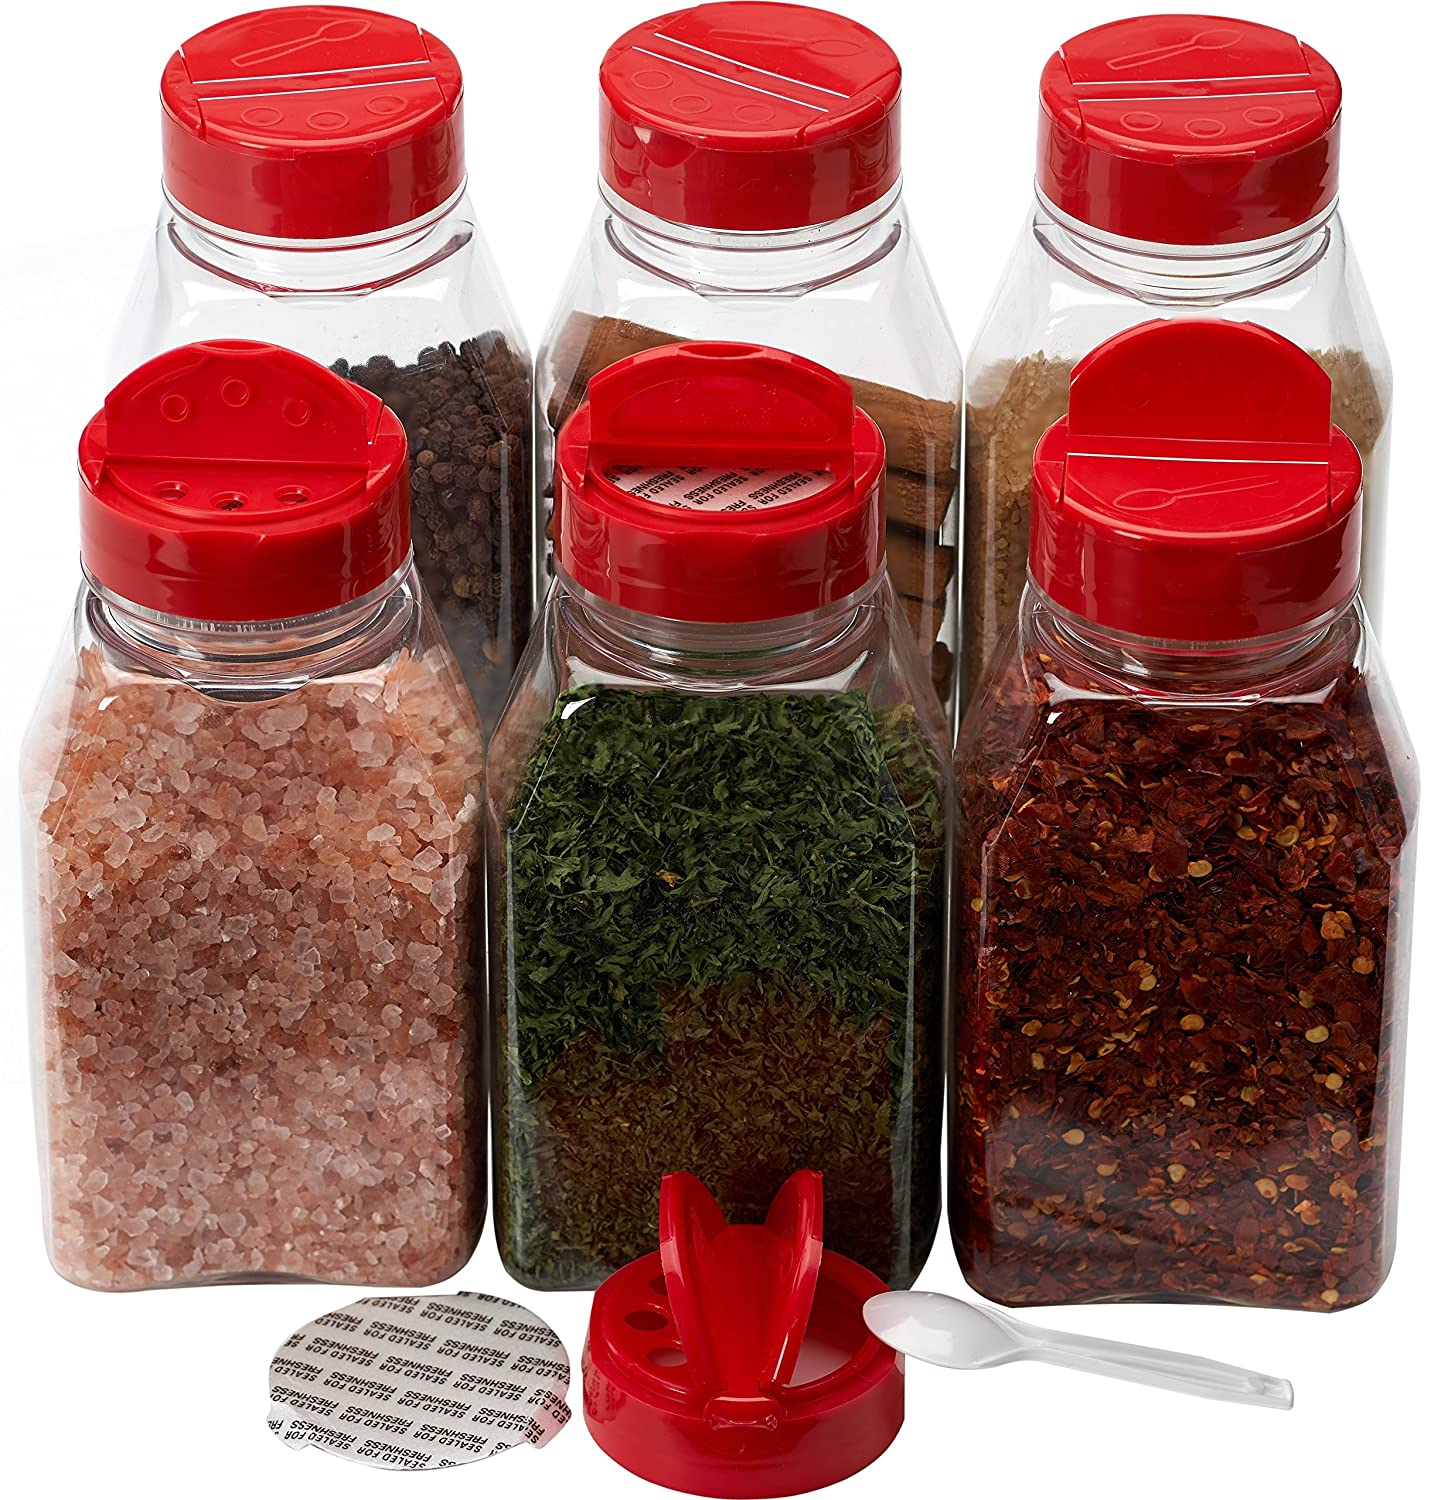 Spice Jars - 16 oz. clear plastic spice containers with shaker red two sided flip tops lids shaking sifter spoon caps - 6 sets - plus 2 mini spoons and 6 White indicating labels COMIN18JU014199